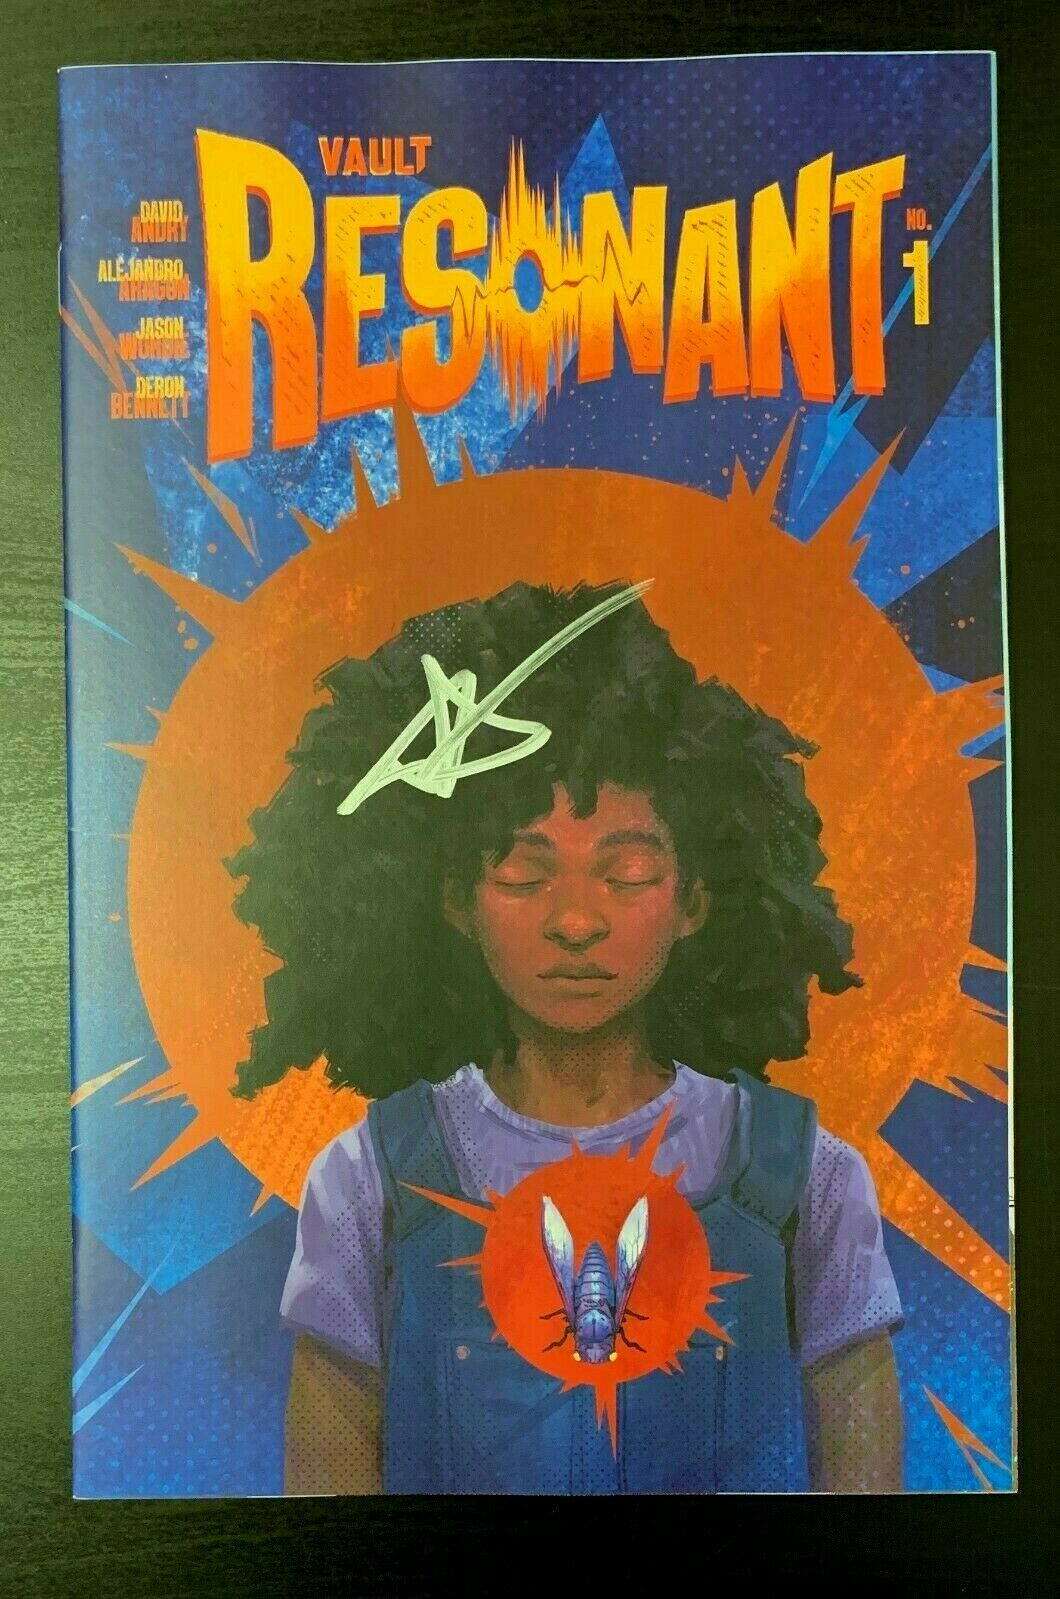 Resonant #1 SDCC San Diego Comic Con Variant SIGNED by David Andry Vault 2019